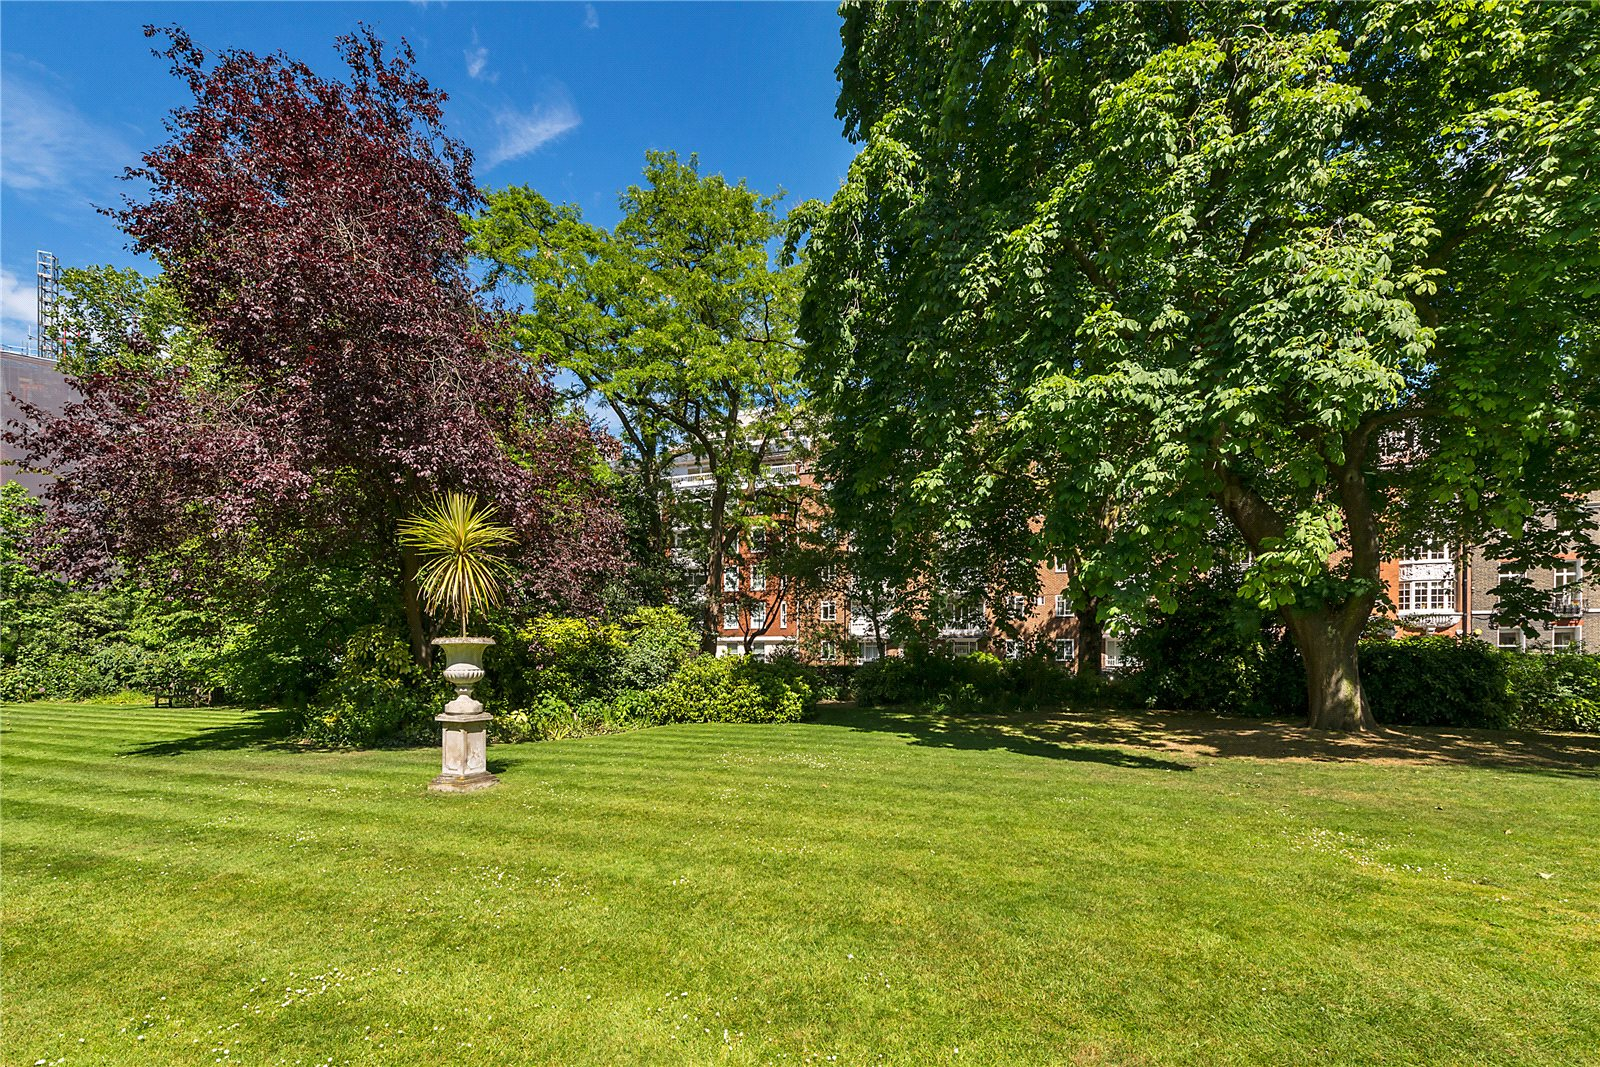 Additional photo for property listing at Hans Place, London, SW1X London, 英格兰